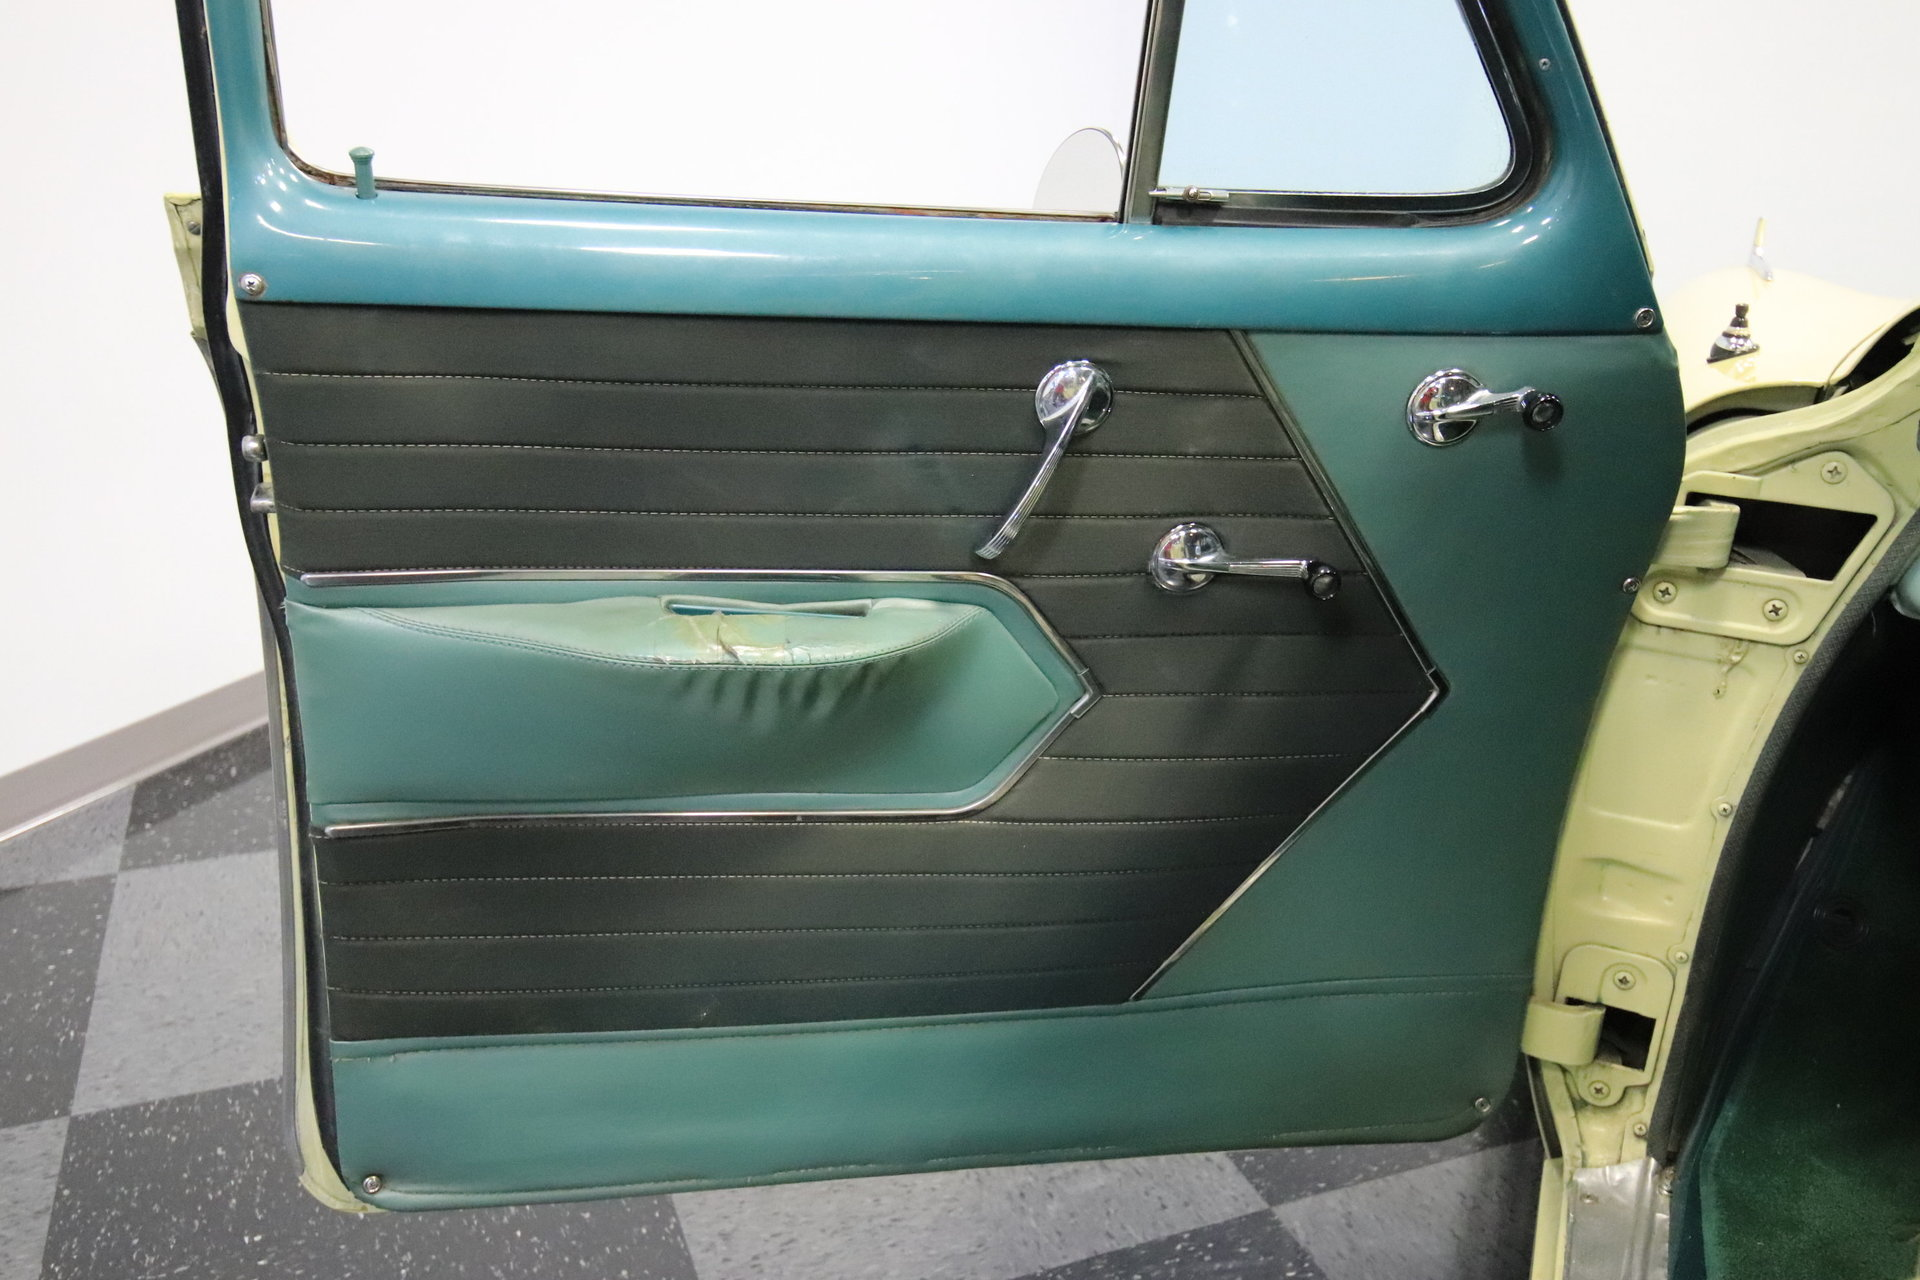 1954 Chevrolet Bel Air Streetside Classics The Nations Trusted 4 Door Spincar View Play Video 360